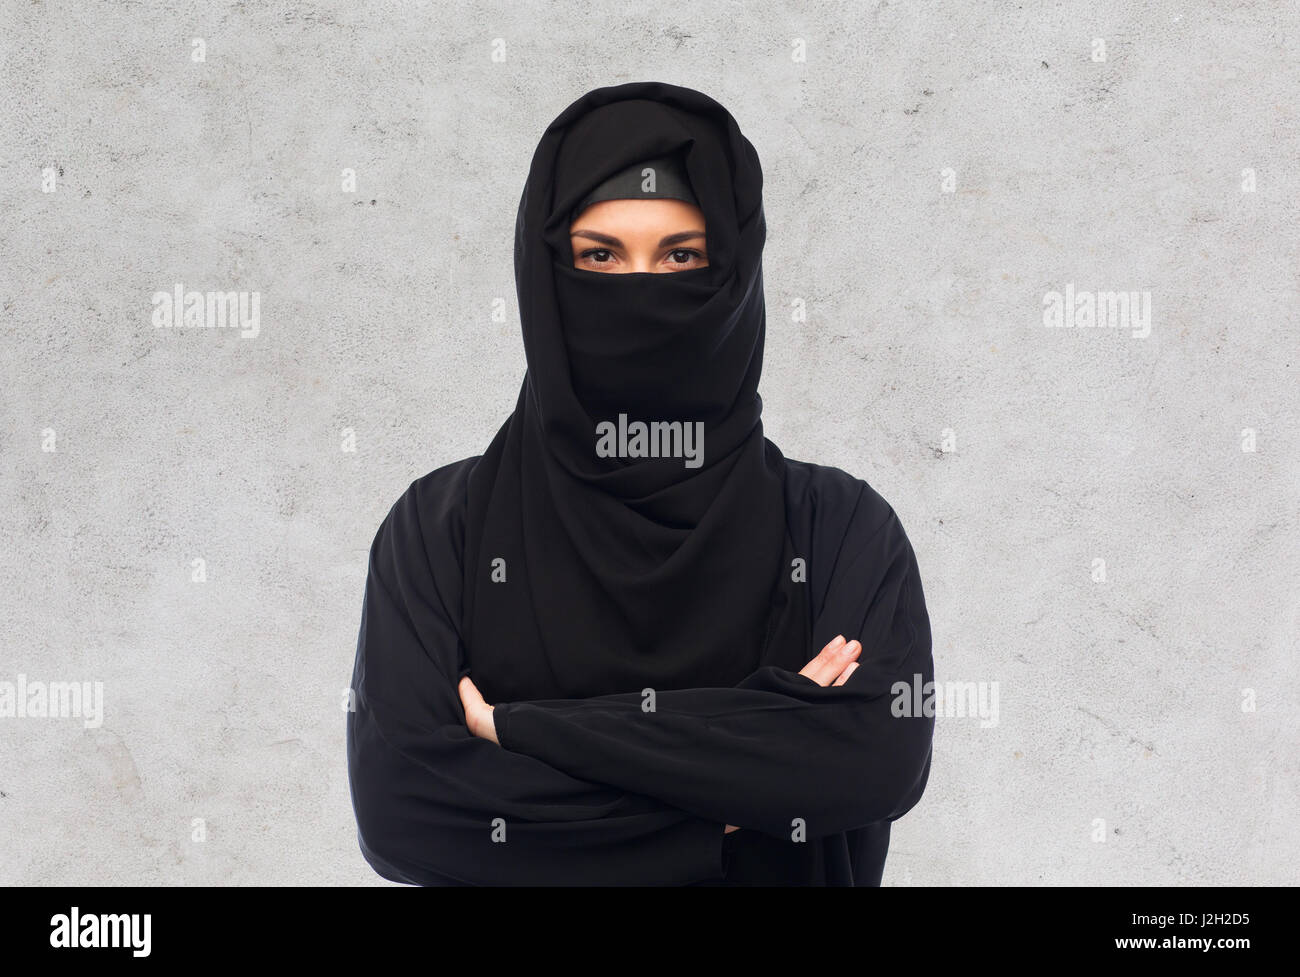 muslim woman in hijab over gray background - Stock Image